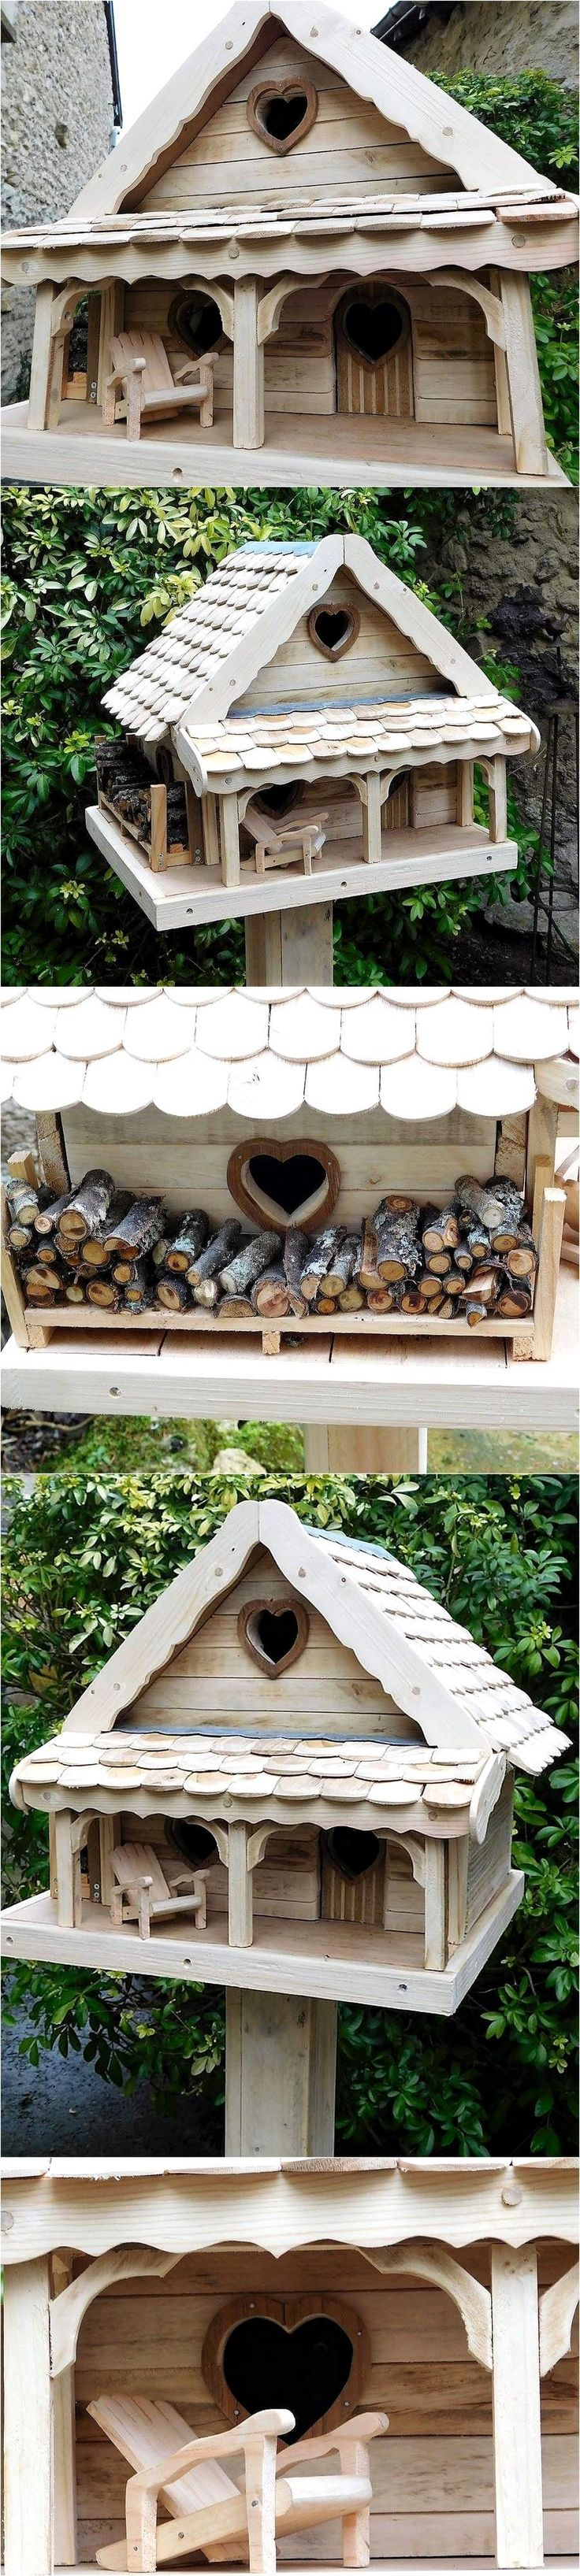 Here we have presented the idea of recycling the wood pallets for the animals use, it is not just easy to craft; but looks innovative when placed in the lawn of the home. The wooden pallets can be reshaped to craft the birdhouse for the birds that live with you in your home or it can be created for any bird that loves to stay in it. We would love to show you how it looks: